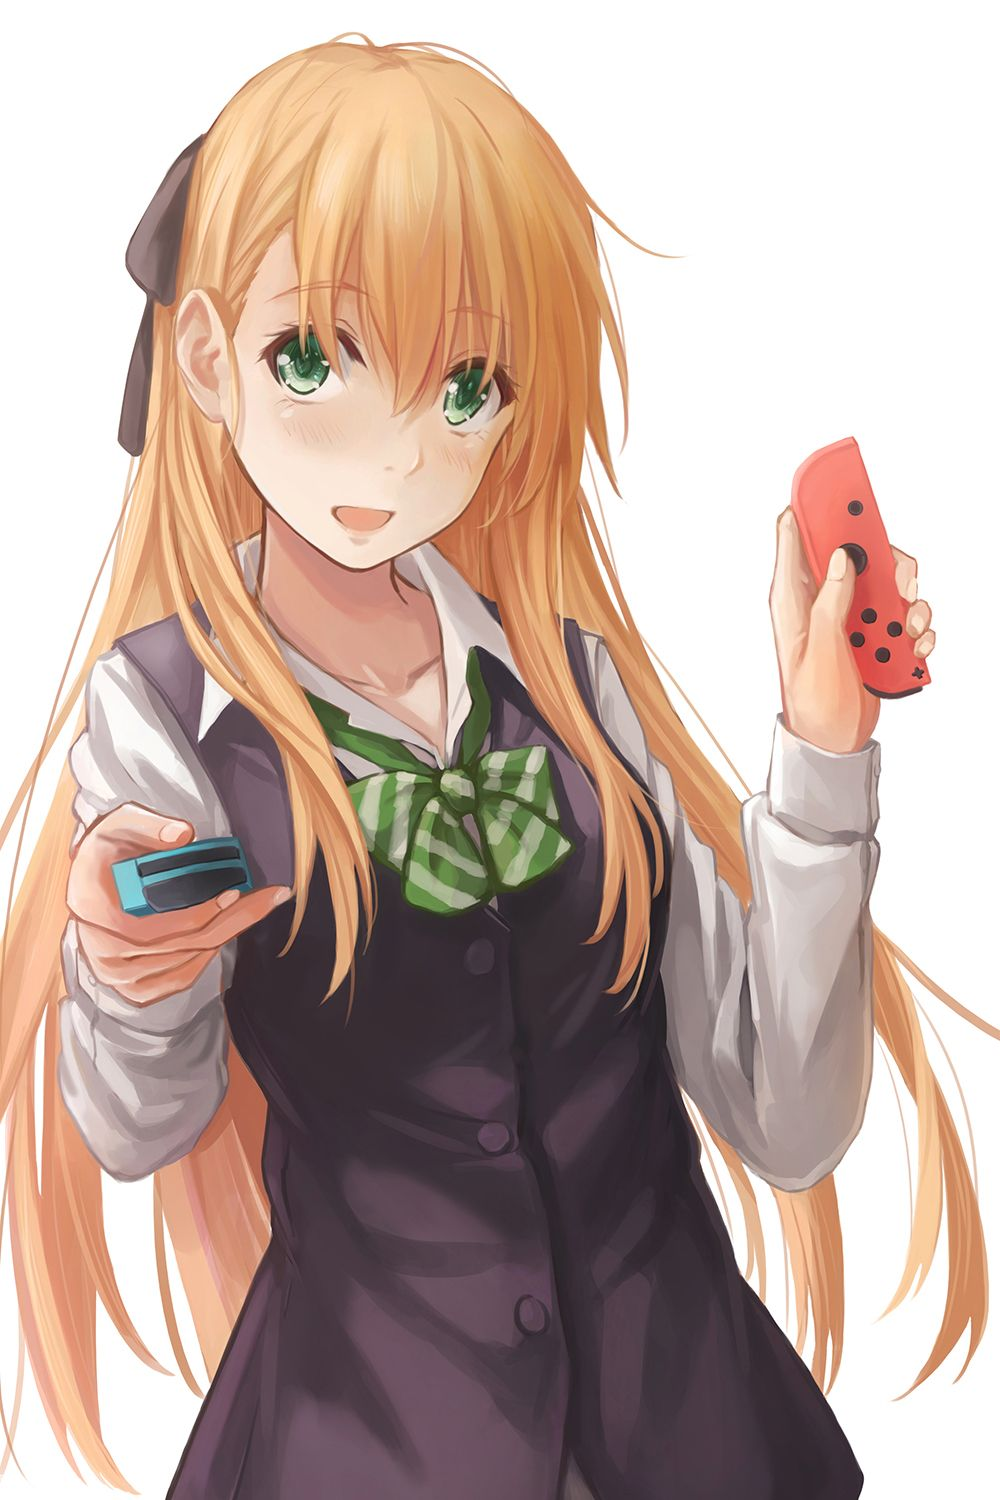 Anime 1000x1500 gamers anime girls Karen Tendou animes Gamers 1000x1500